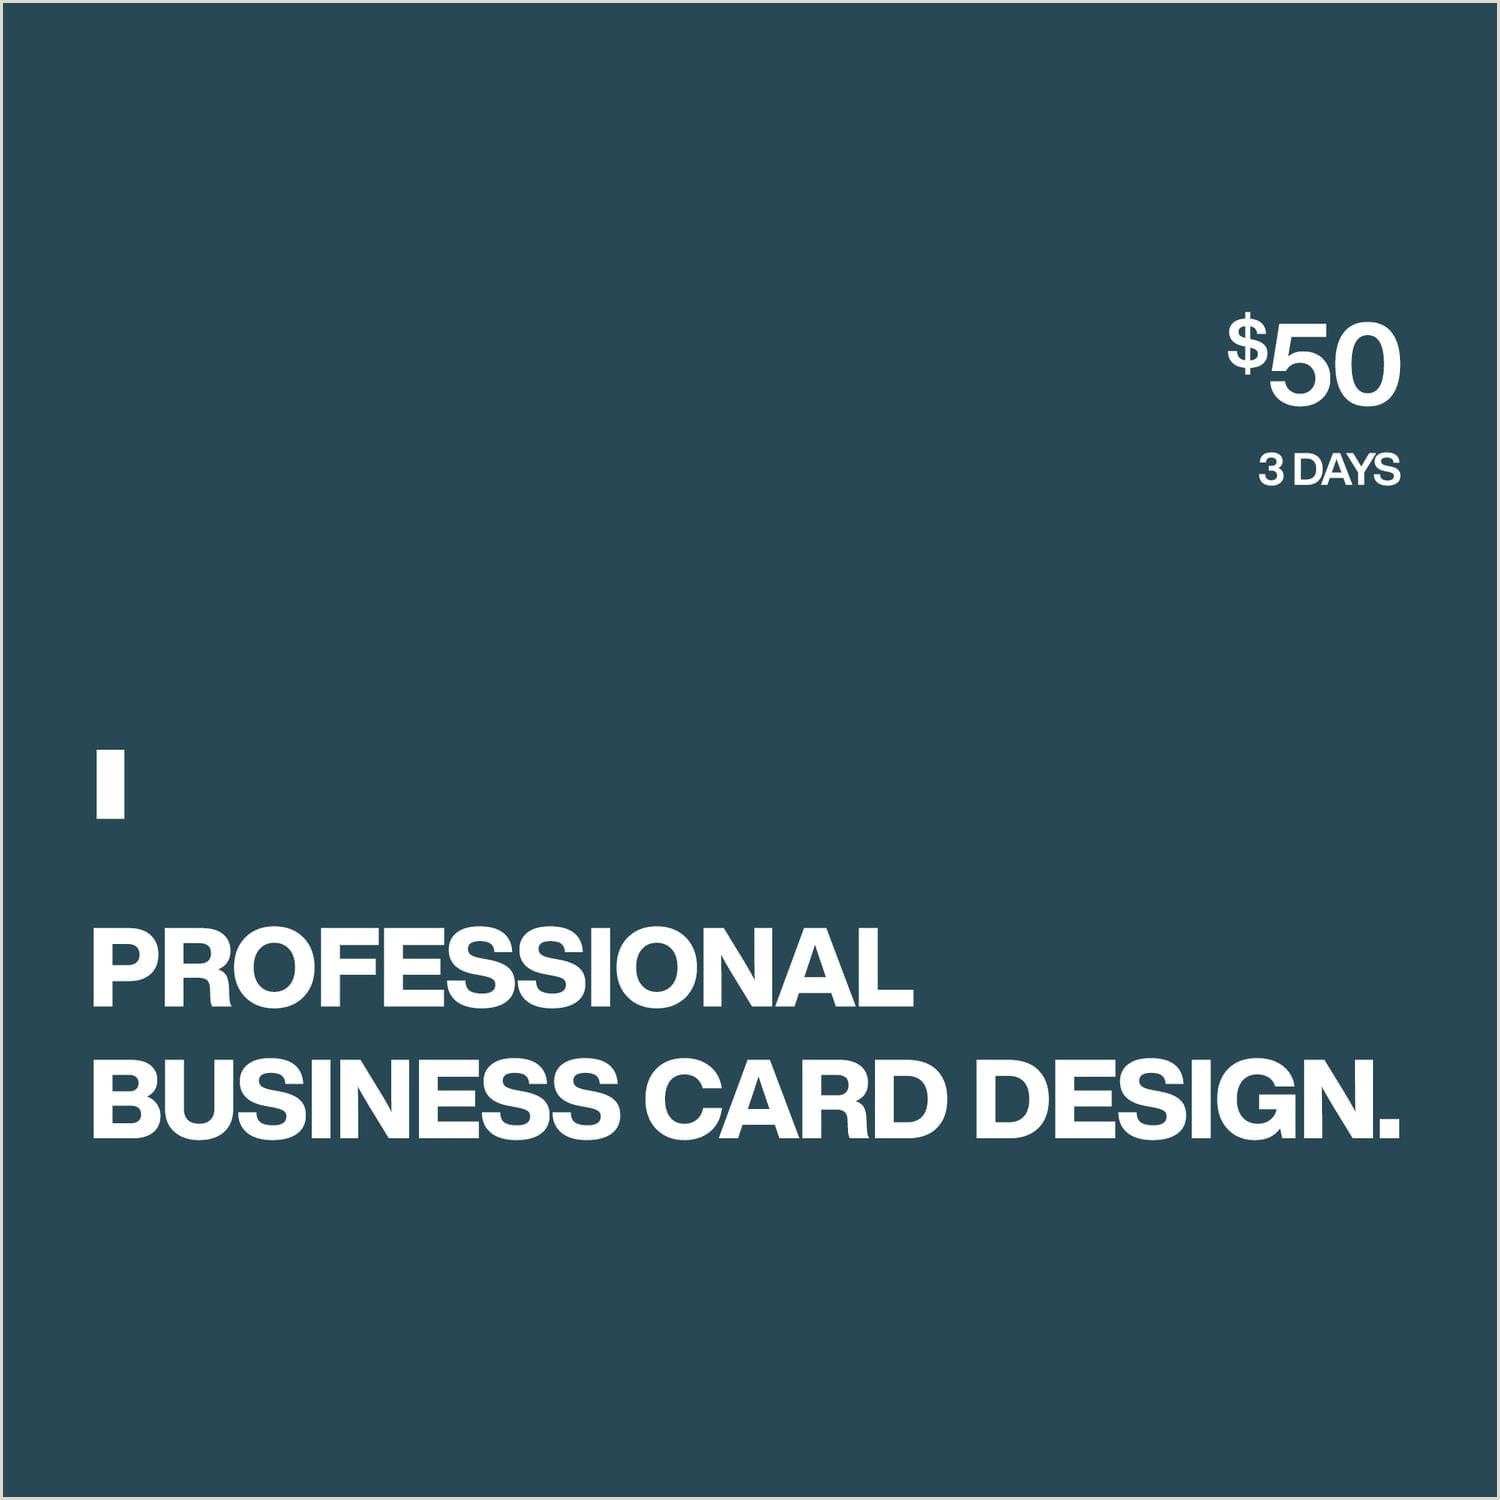 Social Media Business Cards Examples Professional Business Card Design By Unicogfx On Envato Studio